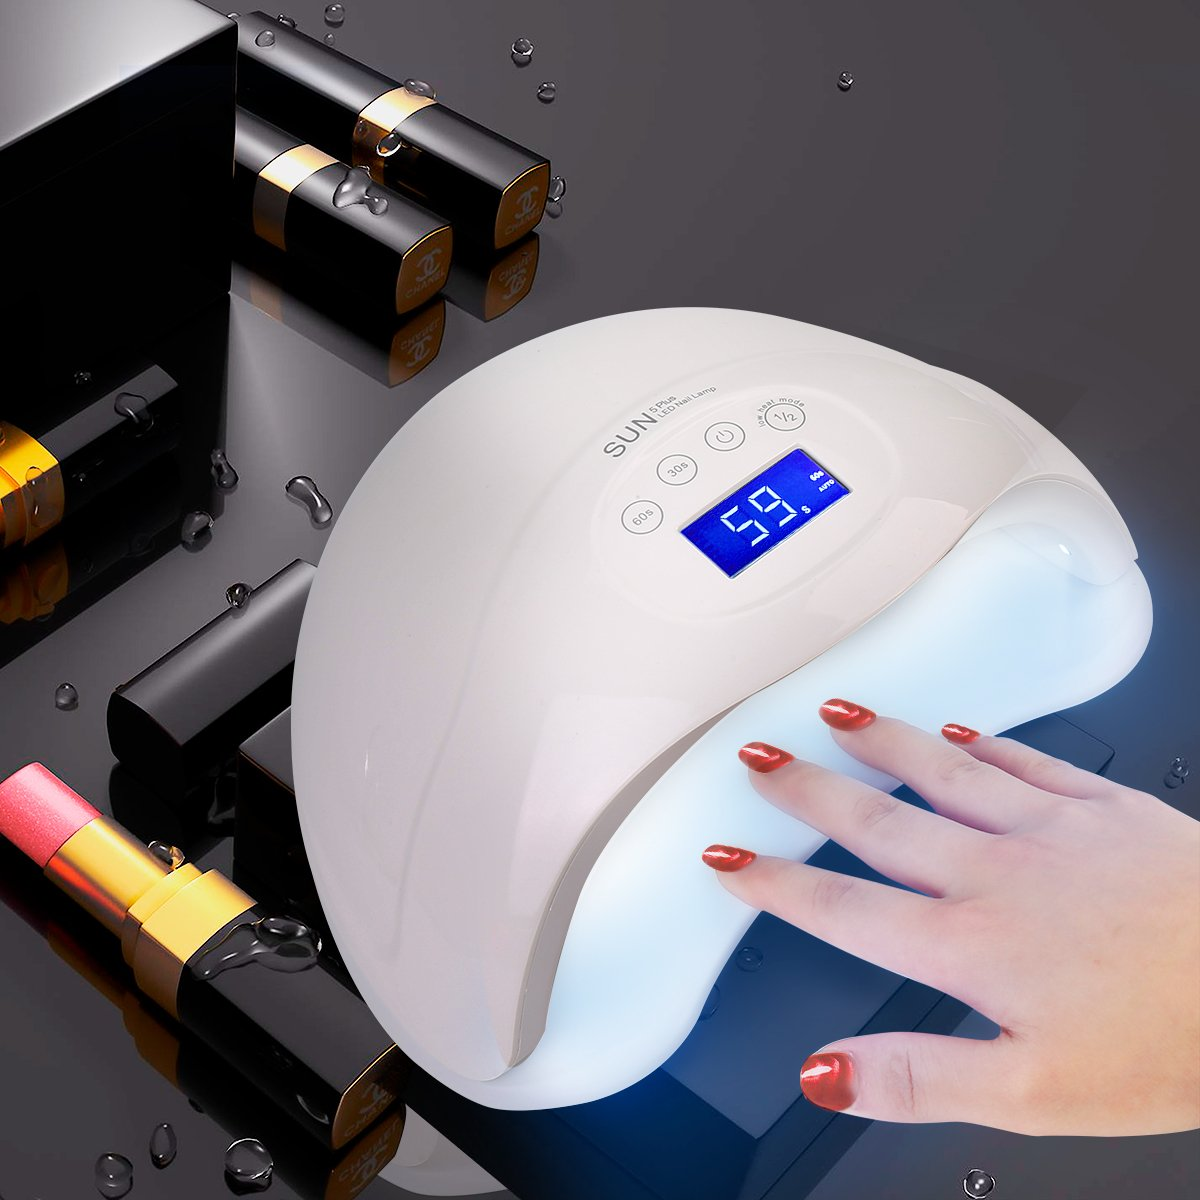 48W LED Curing Light Nail Art Lamp For Dry Nail with 30s, 60s, 99s Time Settings and LCD Screen Touch control for All Gels Polishes En-Fun